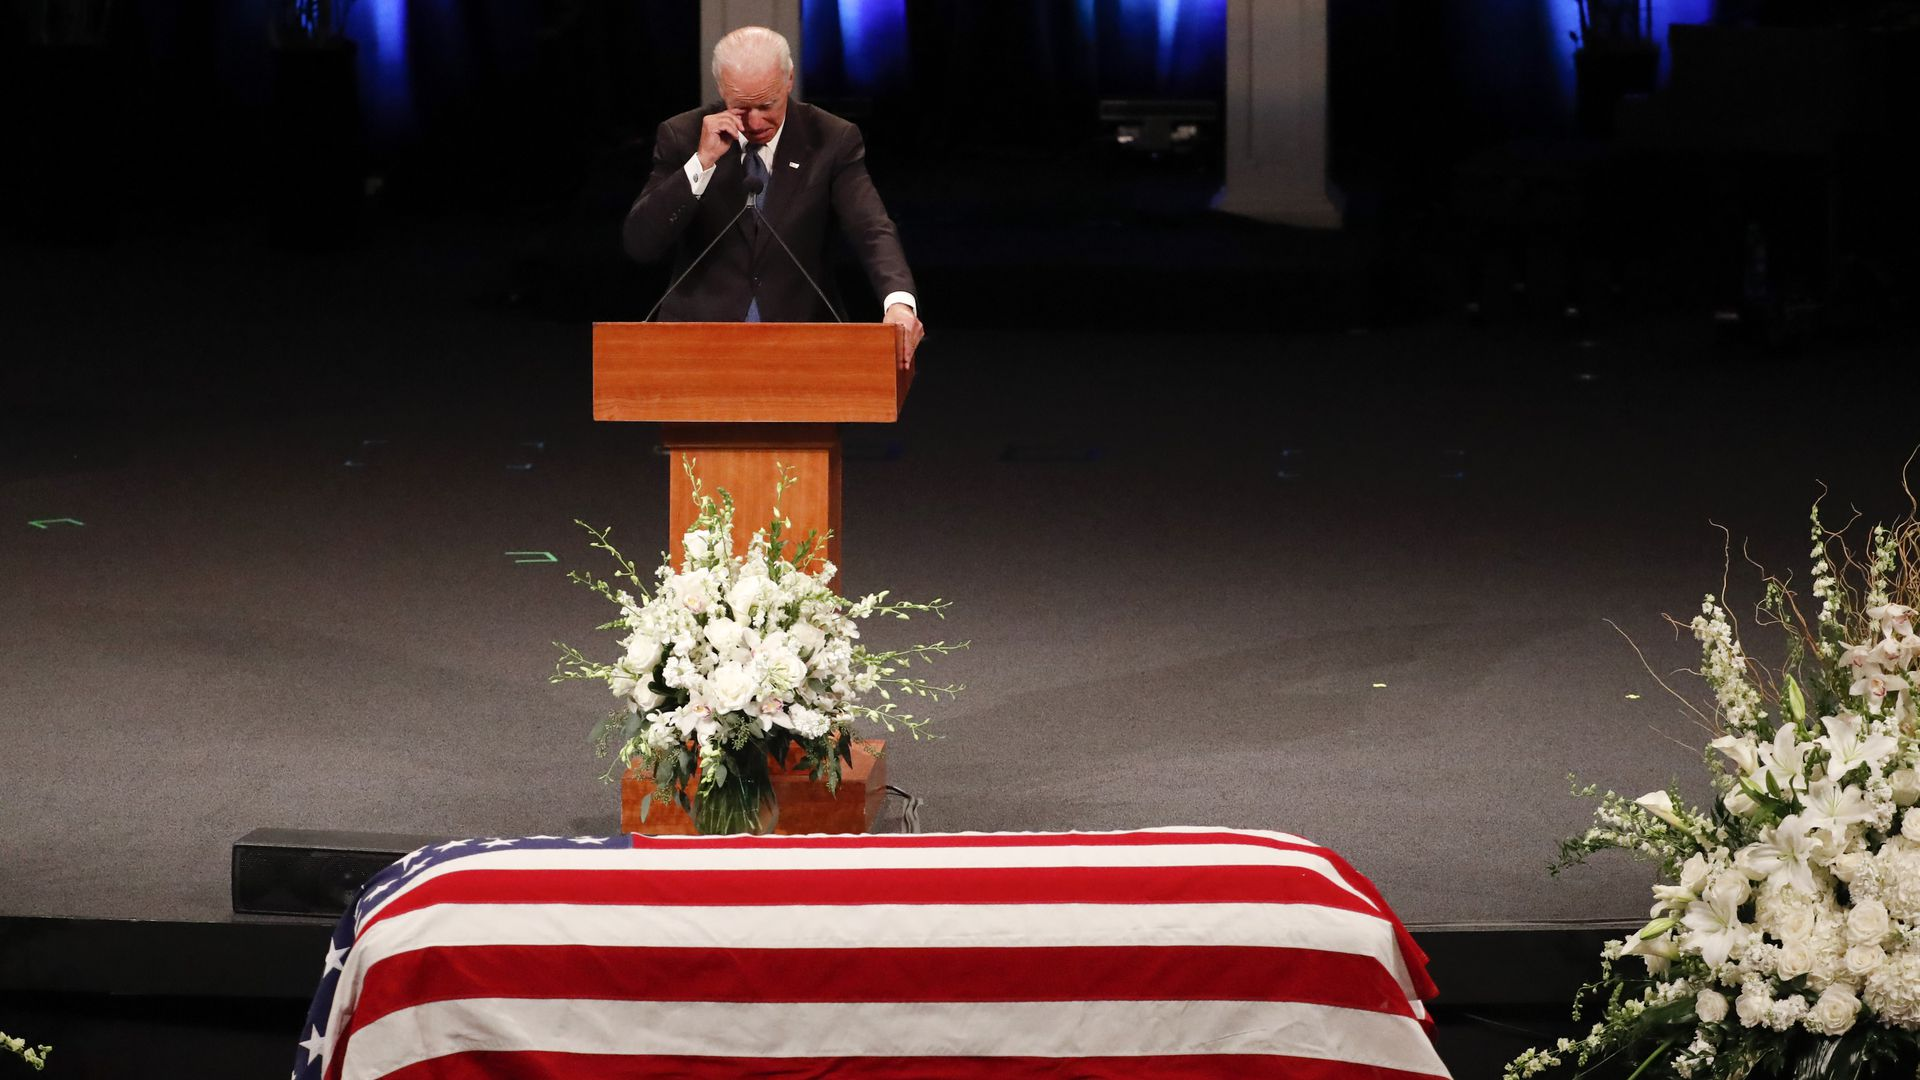 Joe Biden touches his face while crying standing at podium before McCain's casket covered in American flag